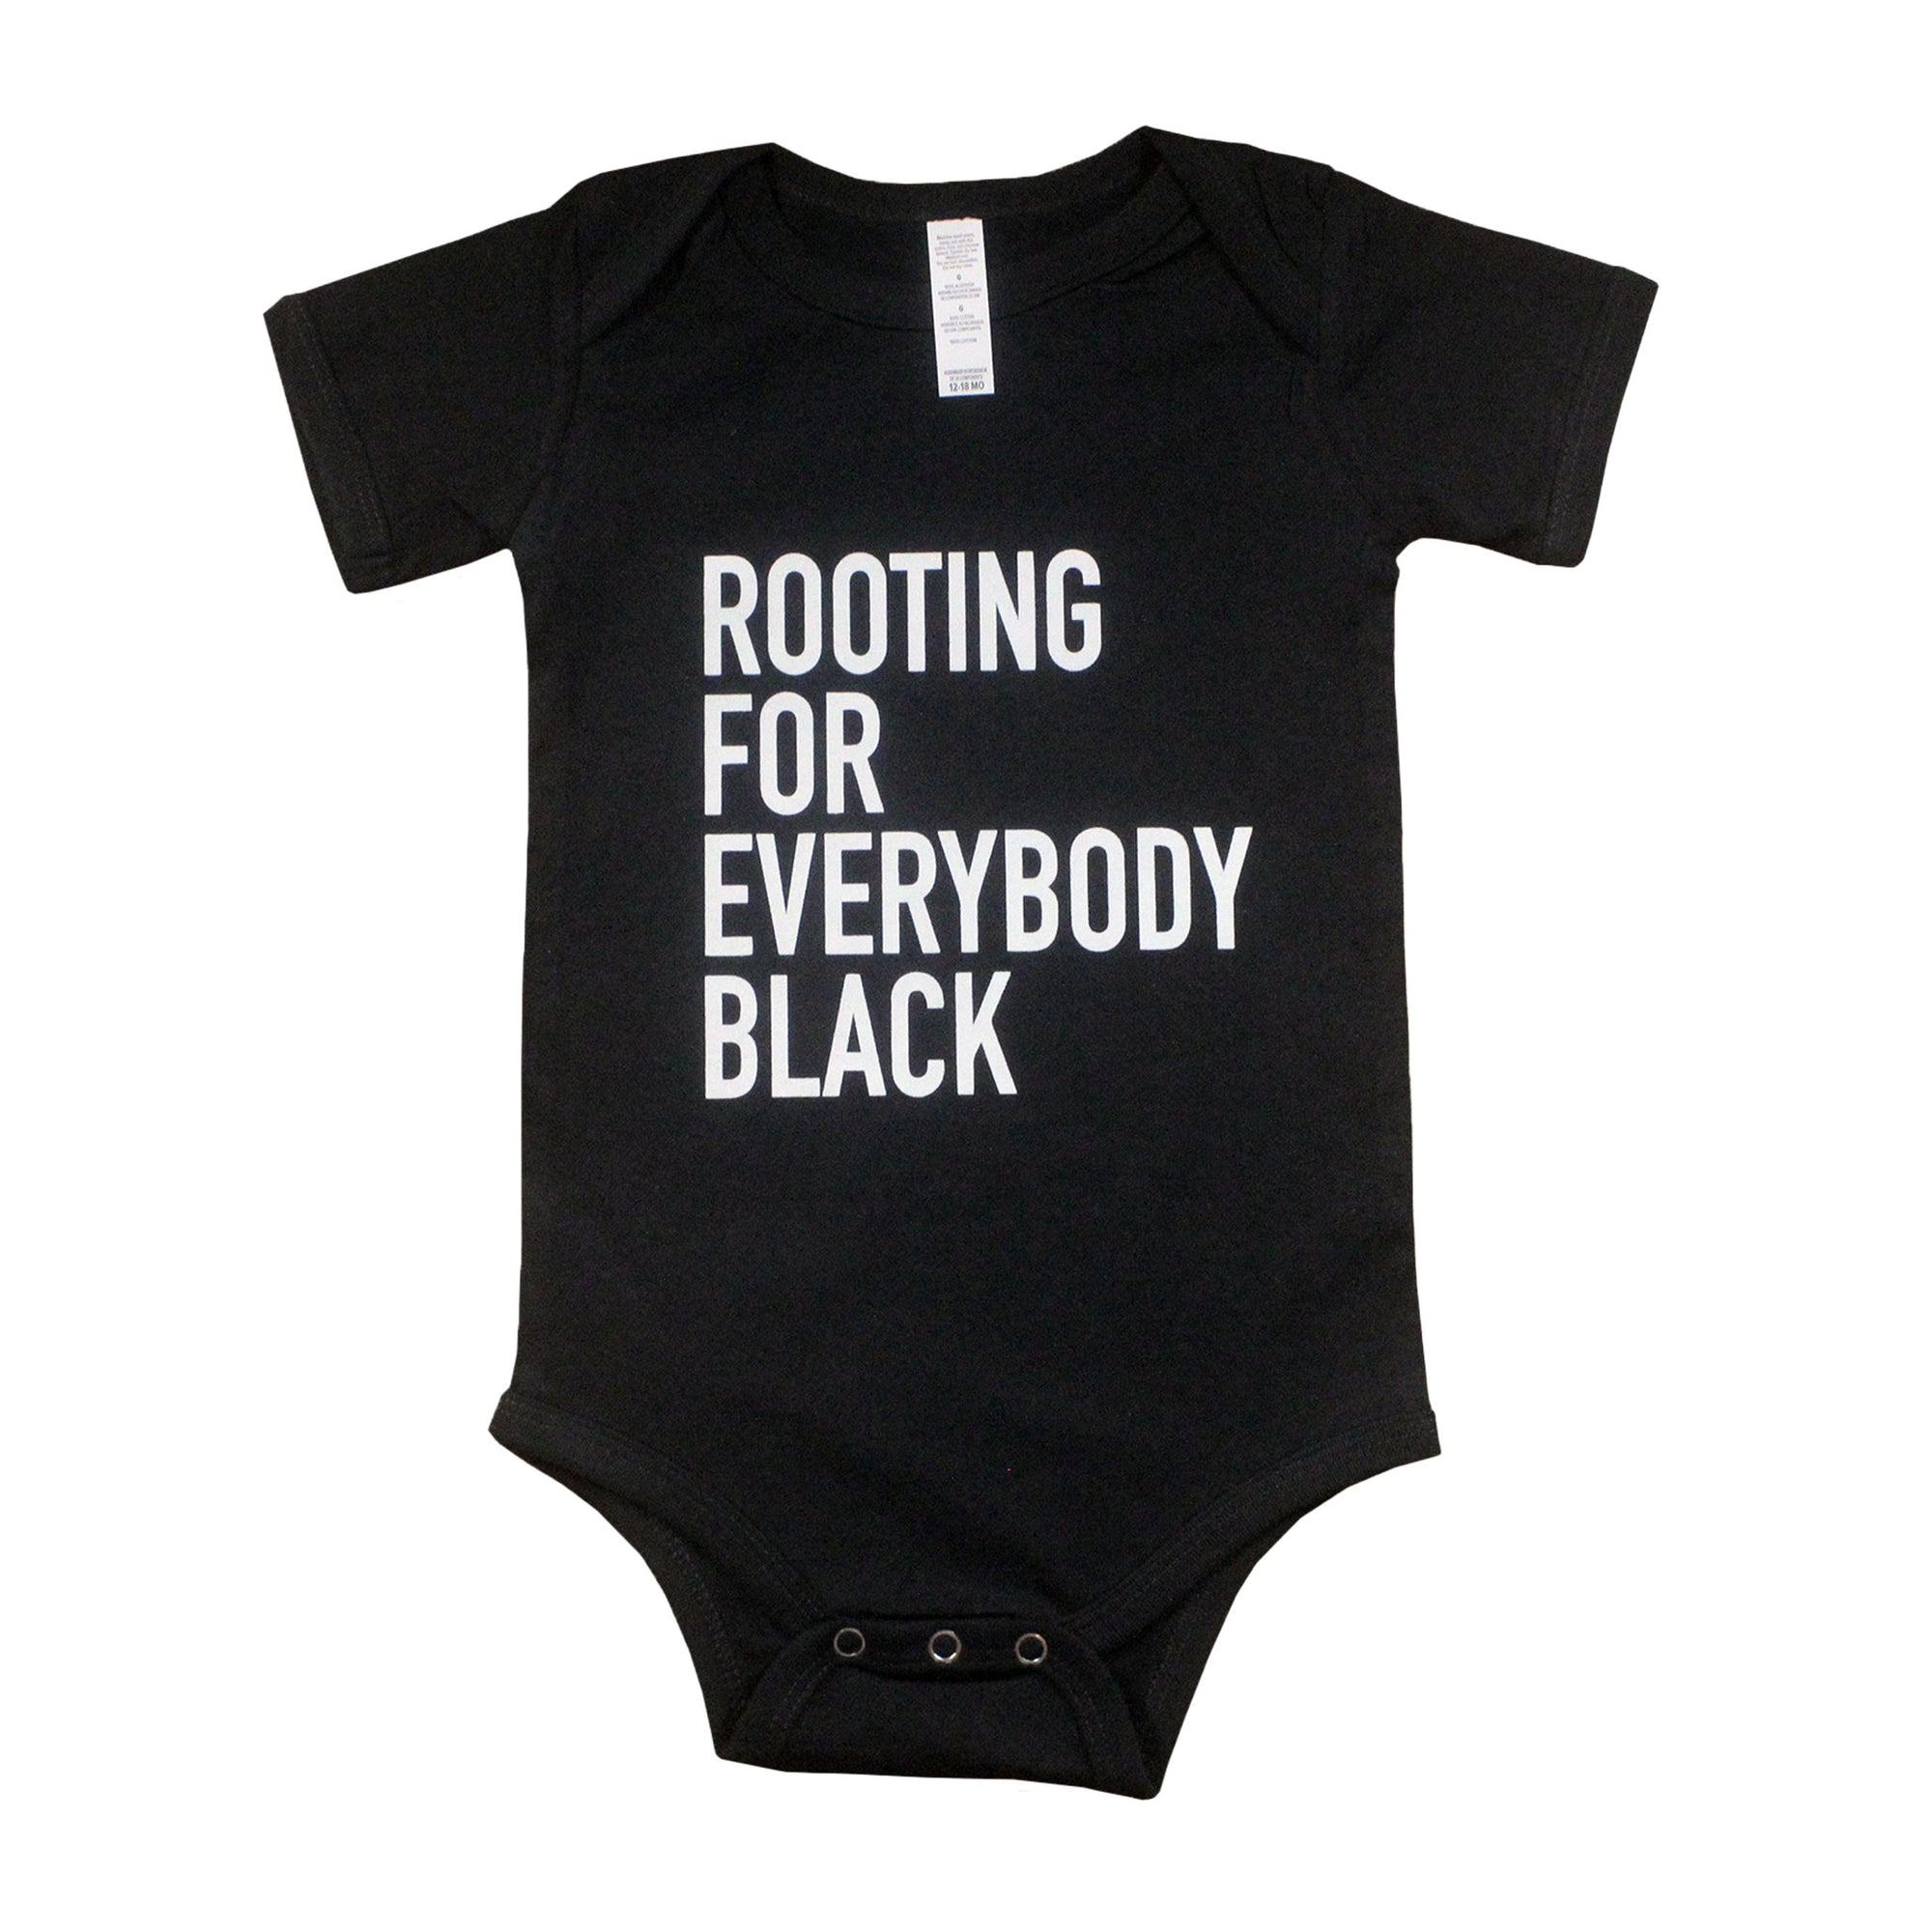 Rooting For Everybody Black Unisex Infant Onesie